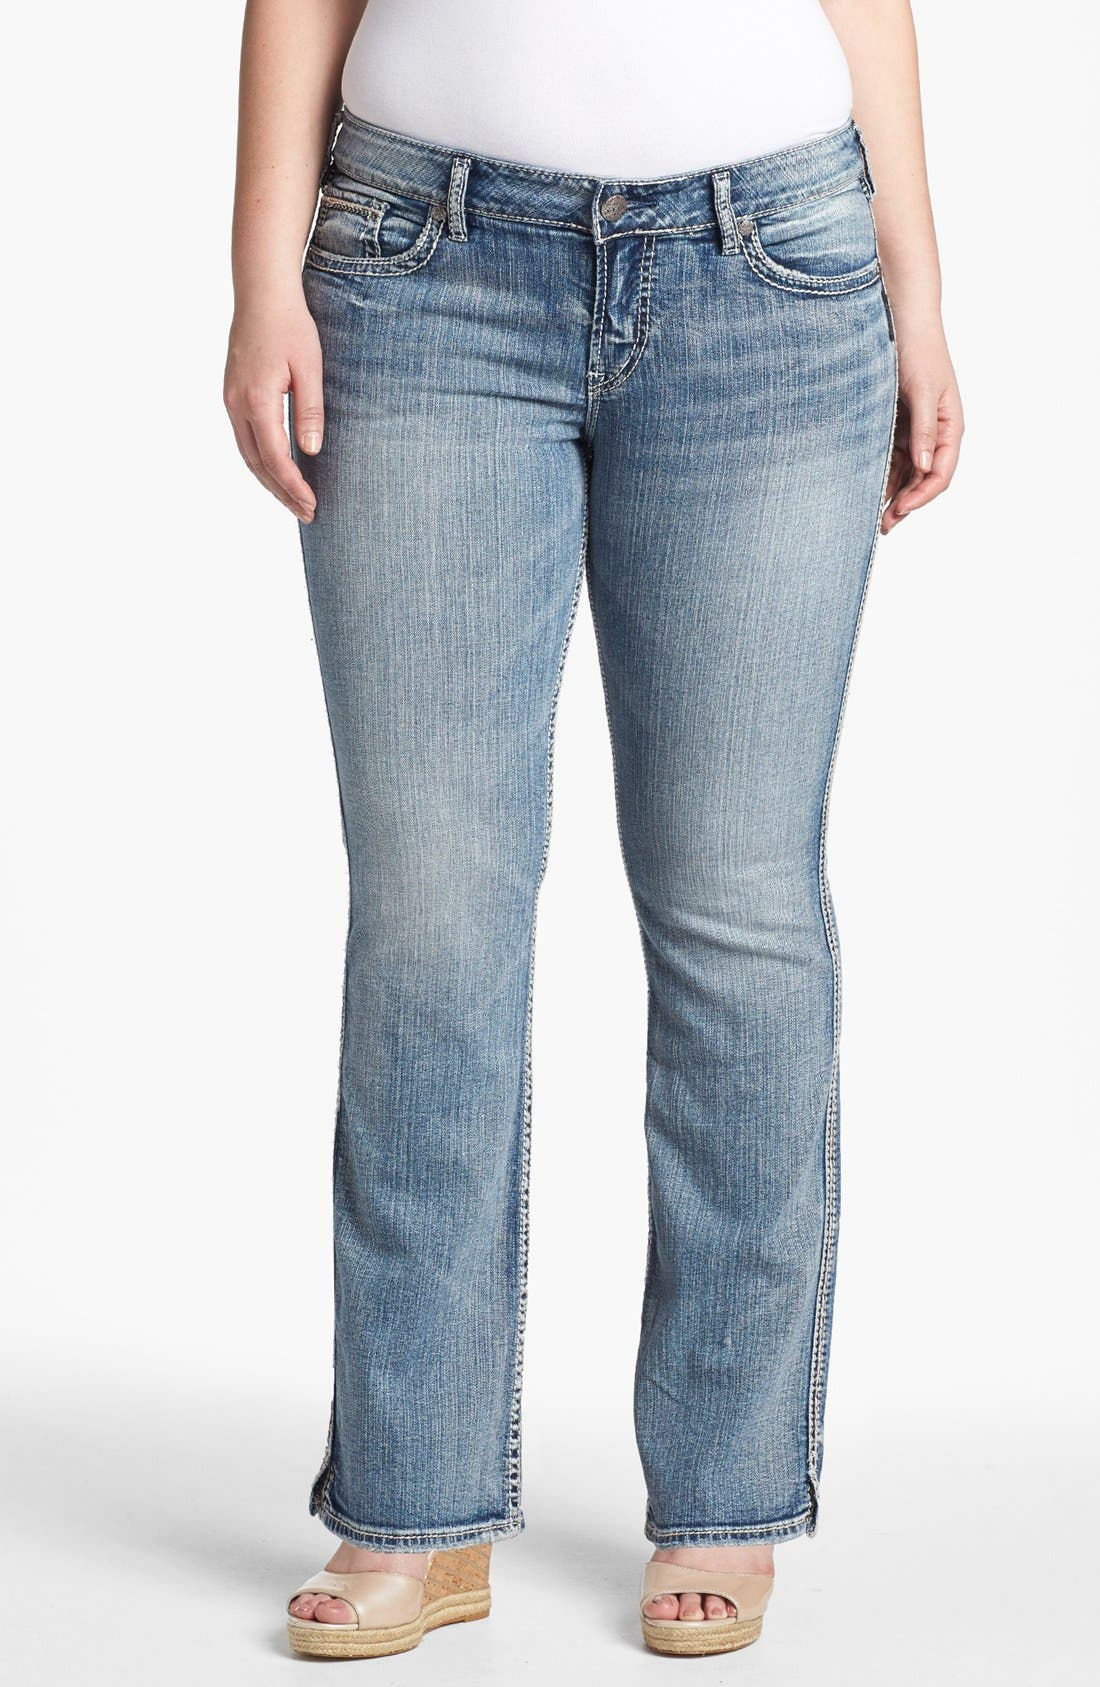 Alternate Image 1 Selected - Silver Jeans Co. 'McKenzie' Faded Bootcut Jeans (Juniors Plus)